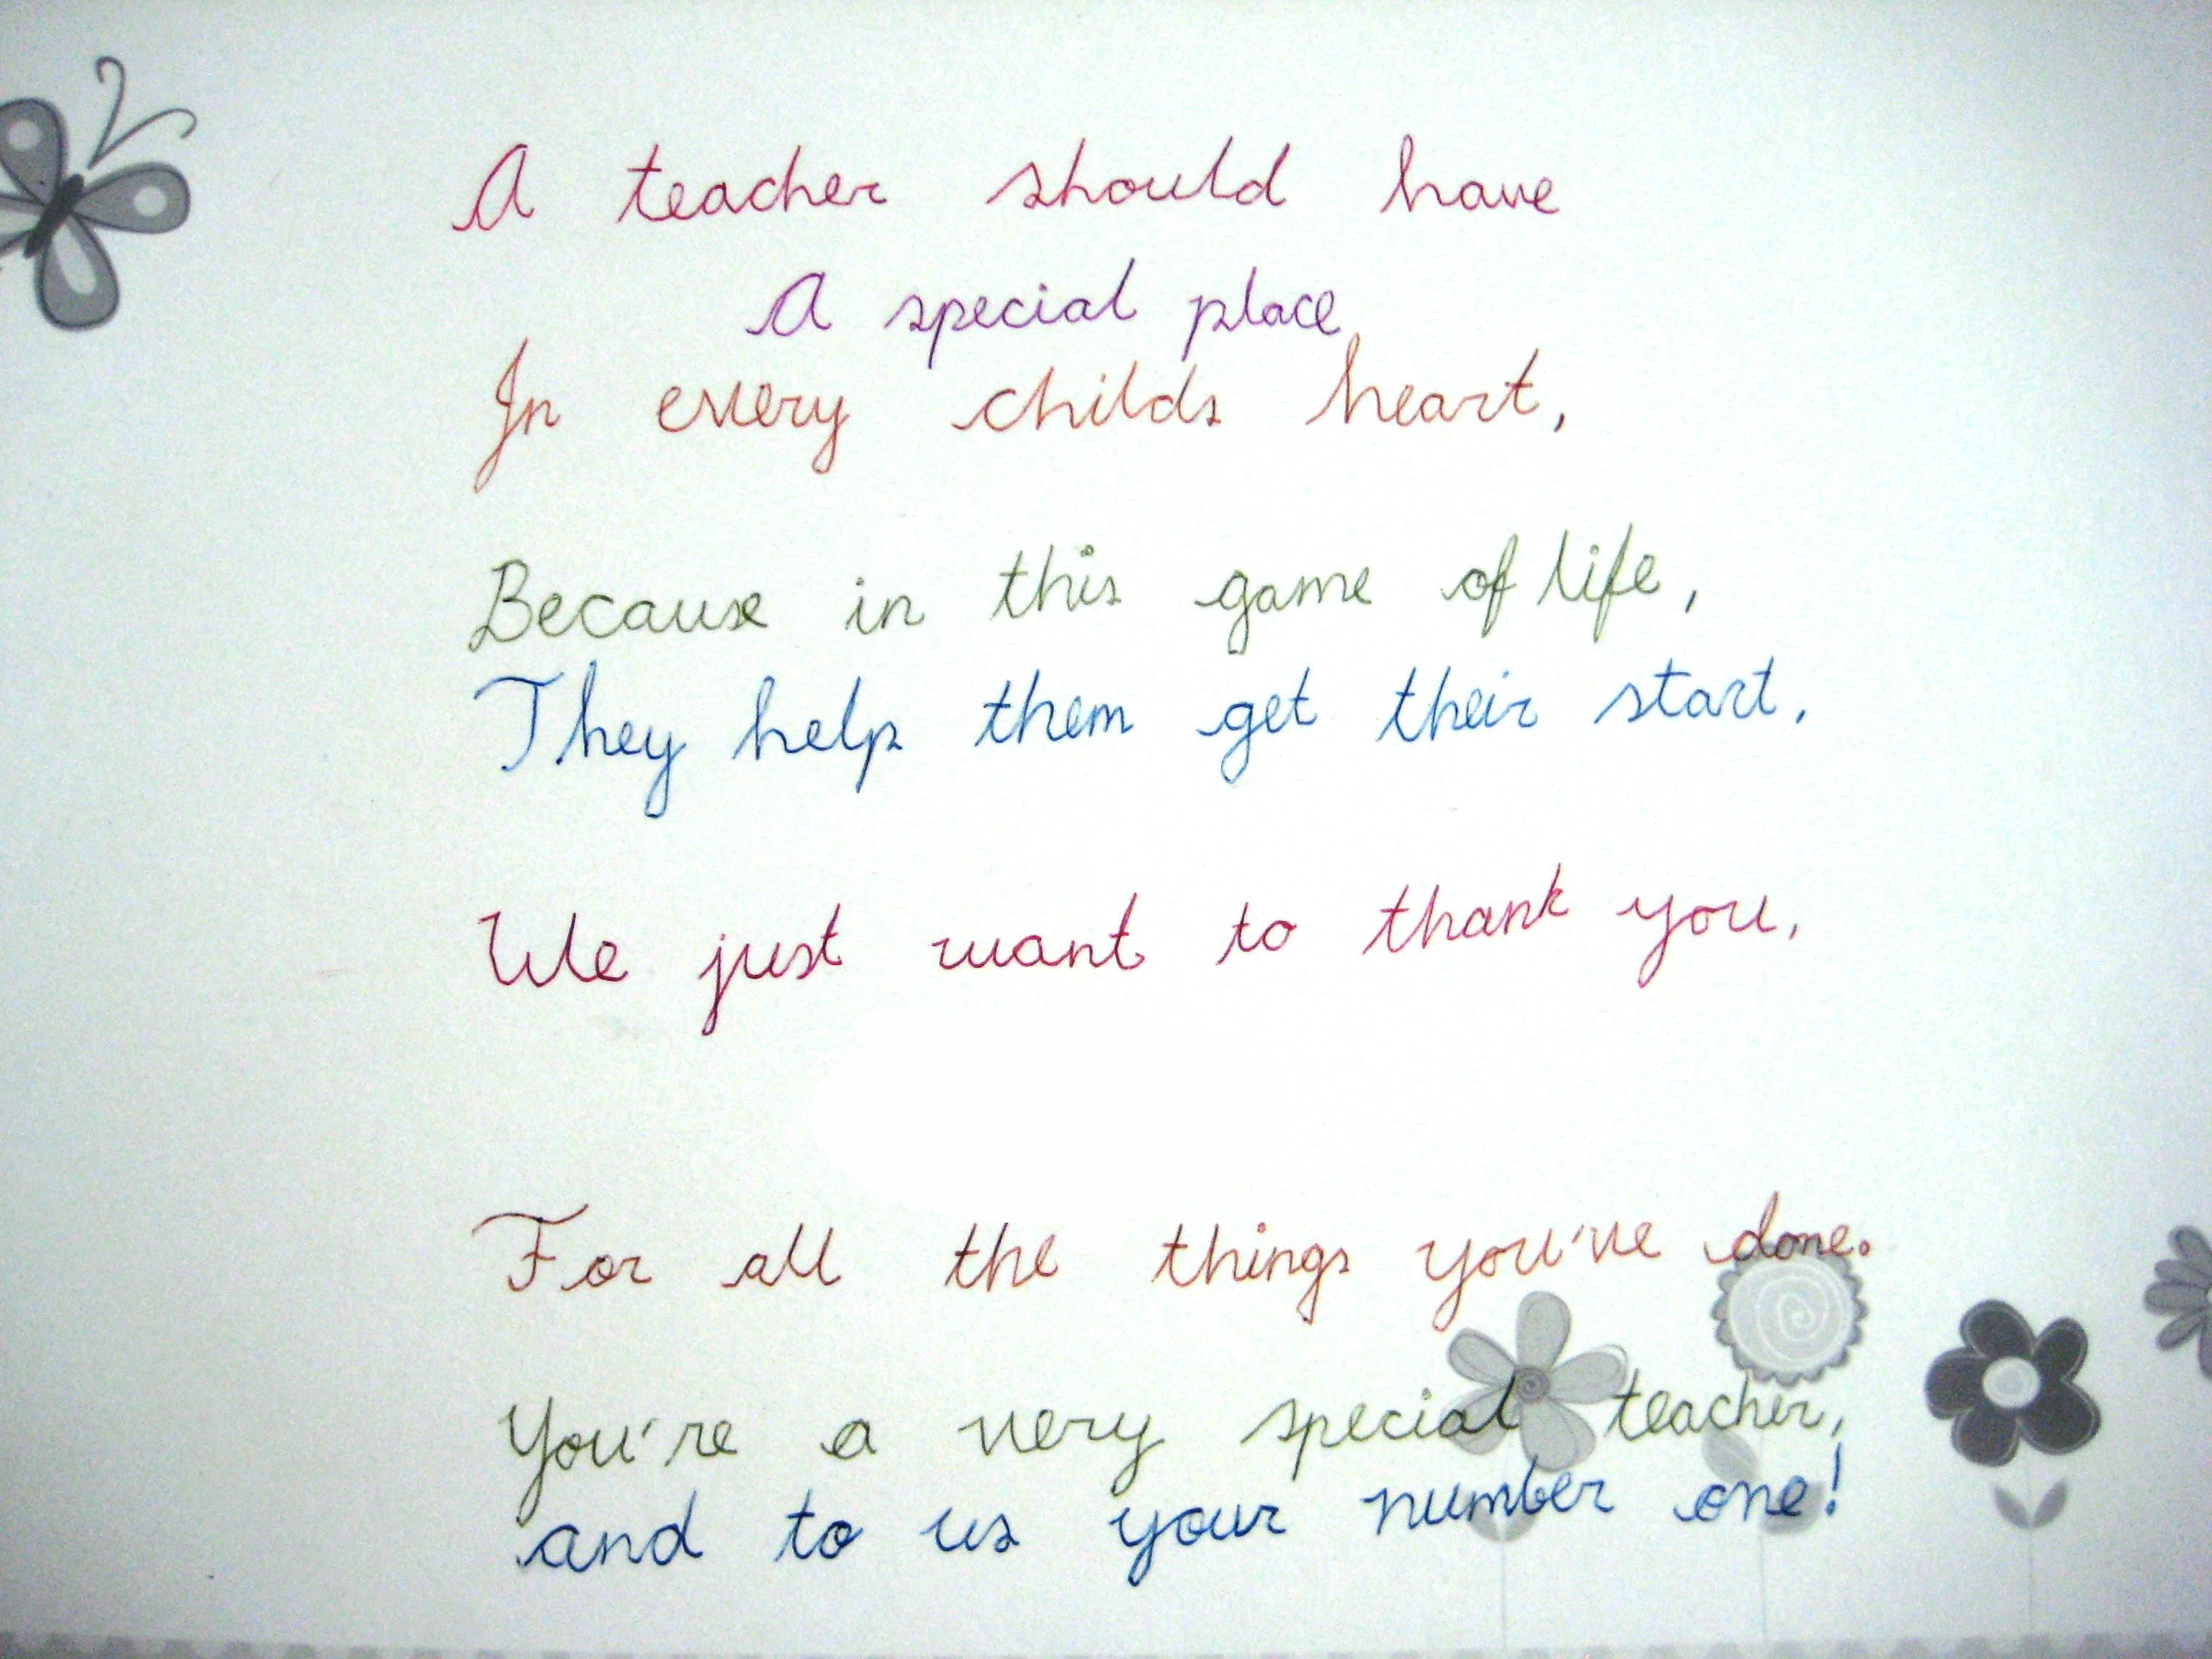 This beautiful poem was written for my daughter from her